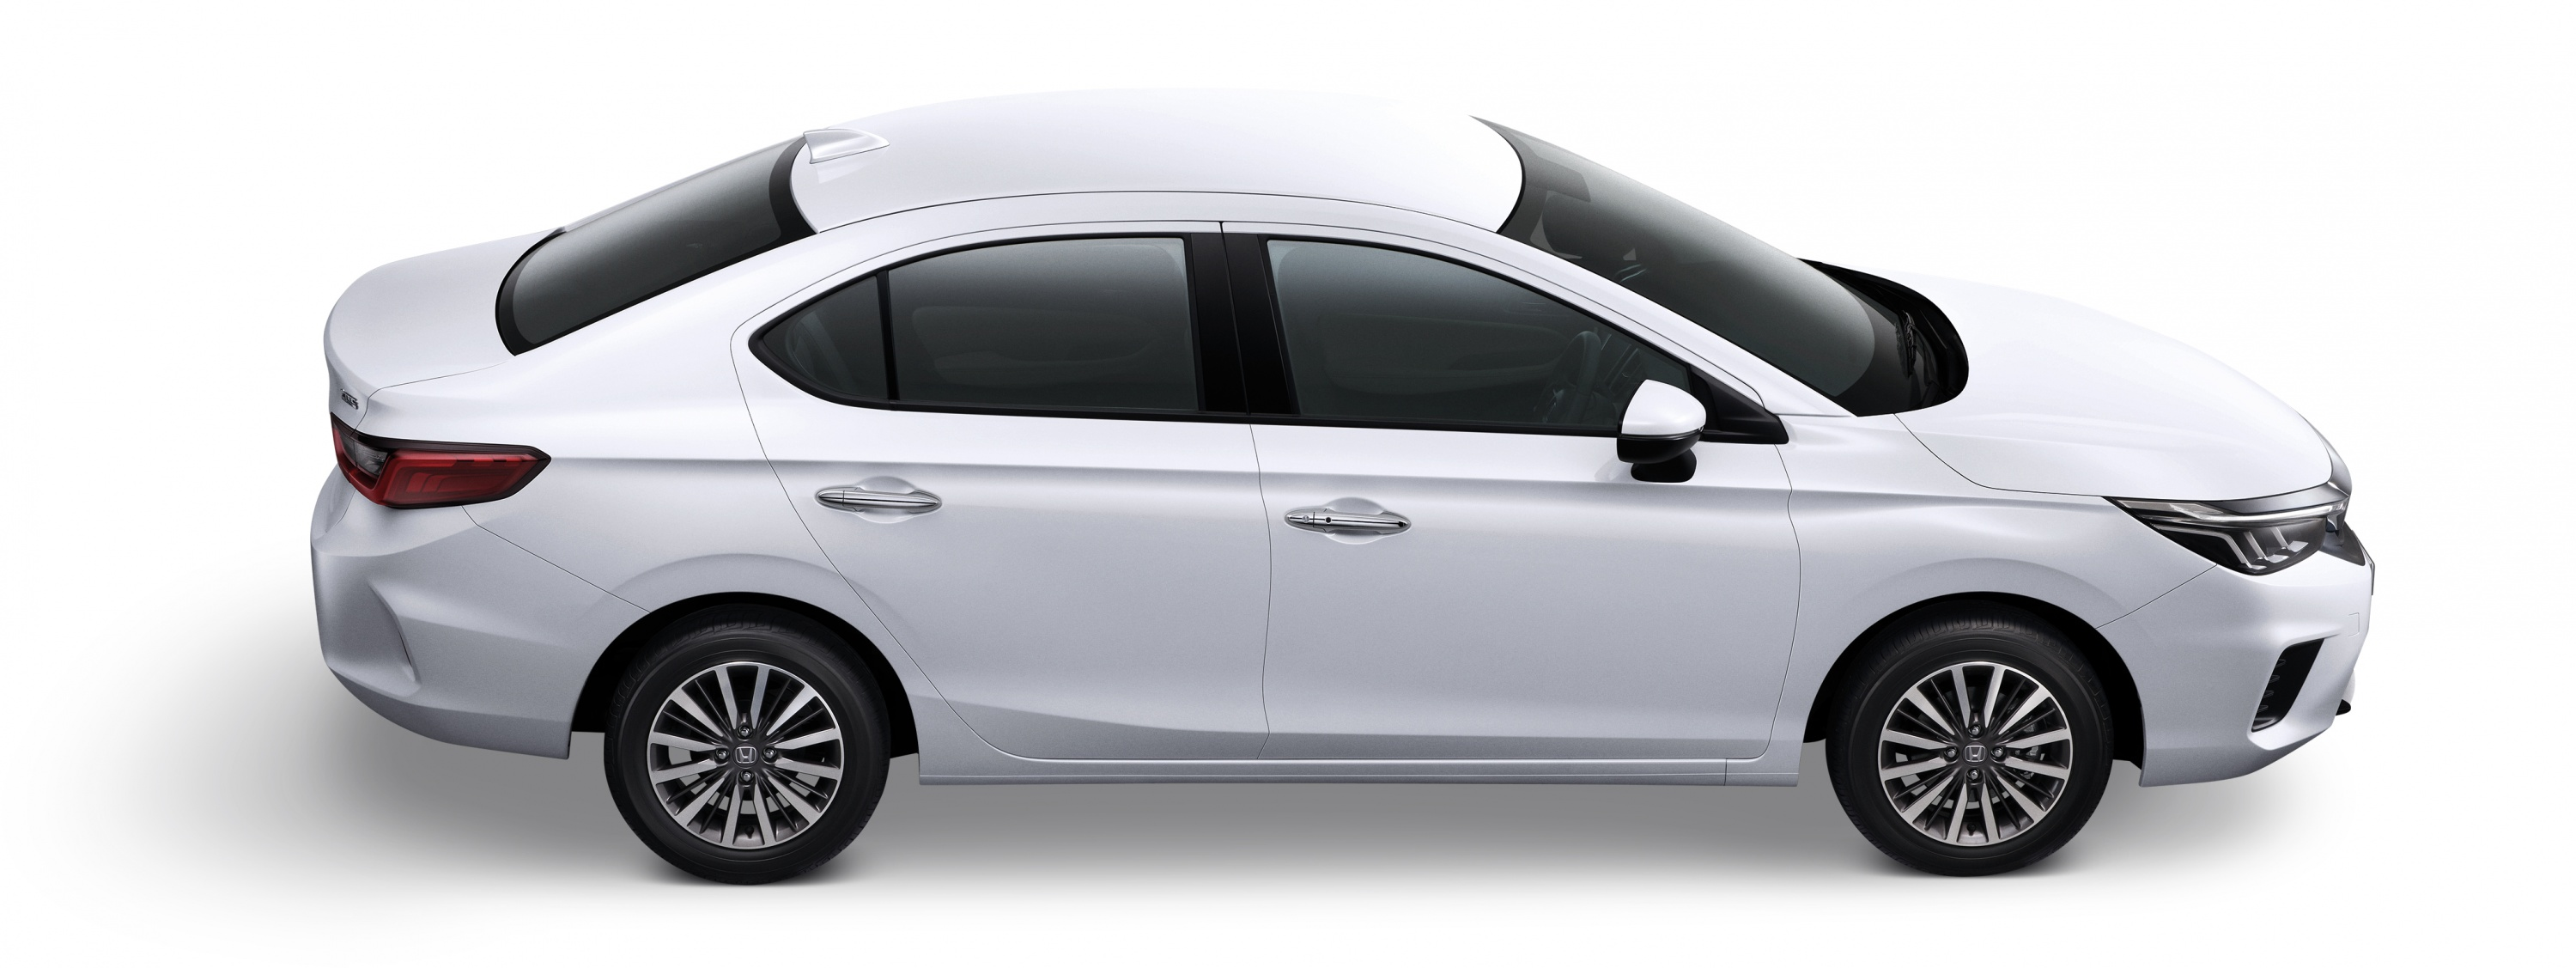 All-new Honda City_Main Shot (Side).jpg